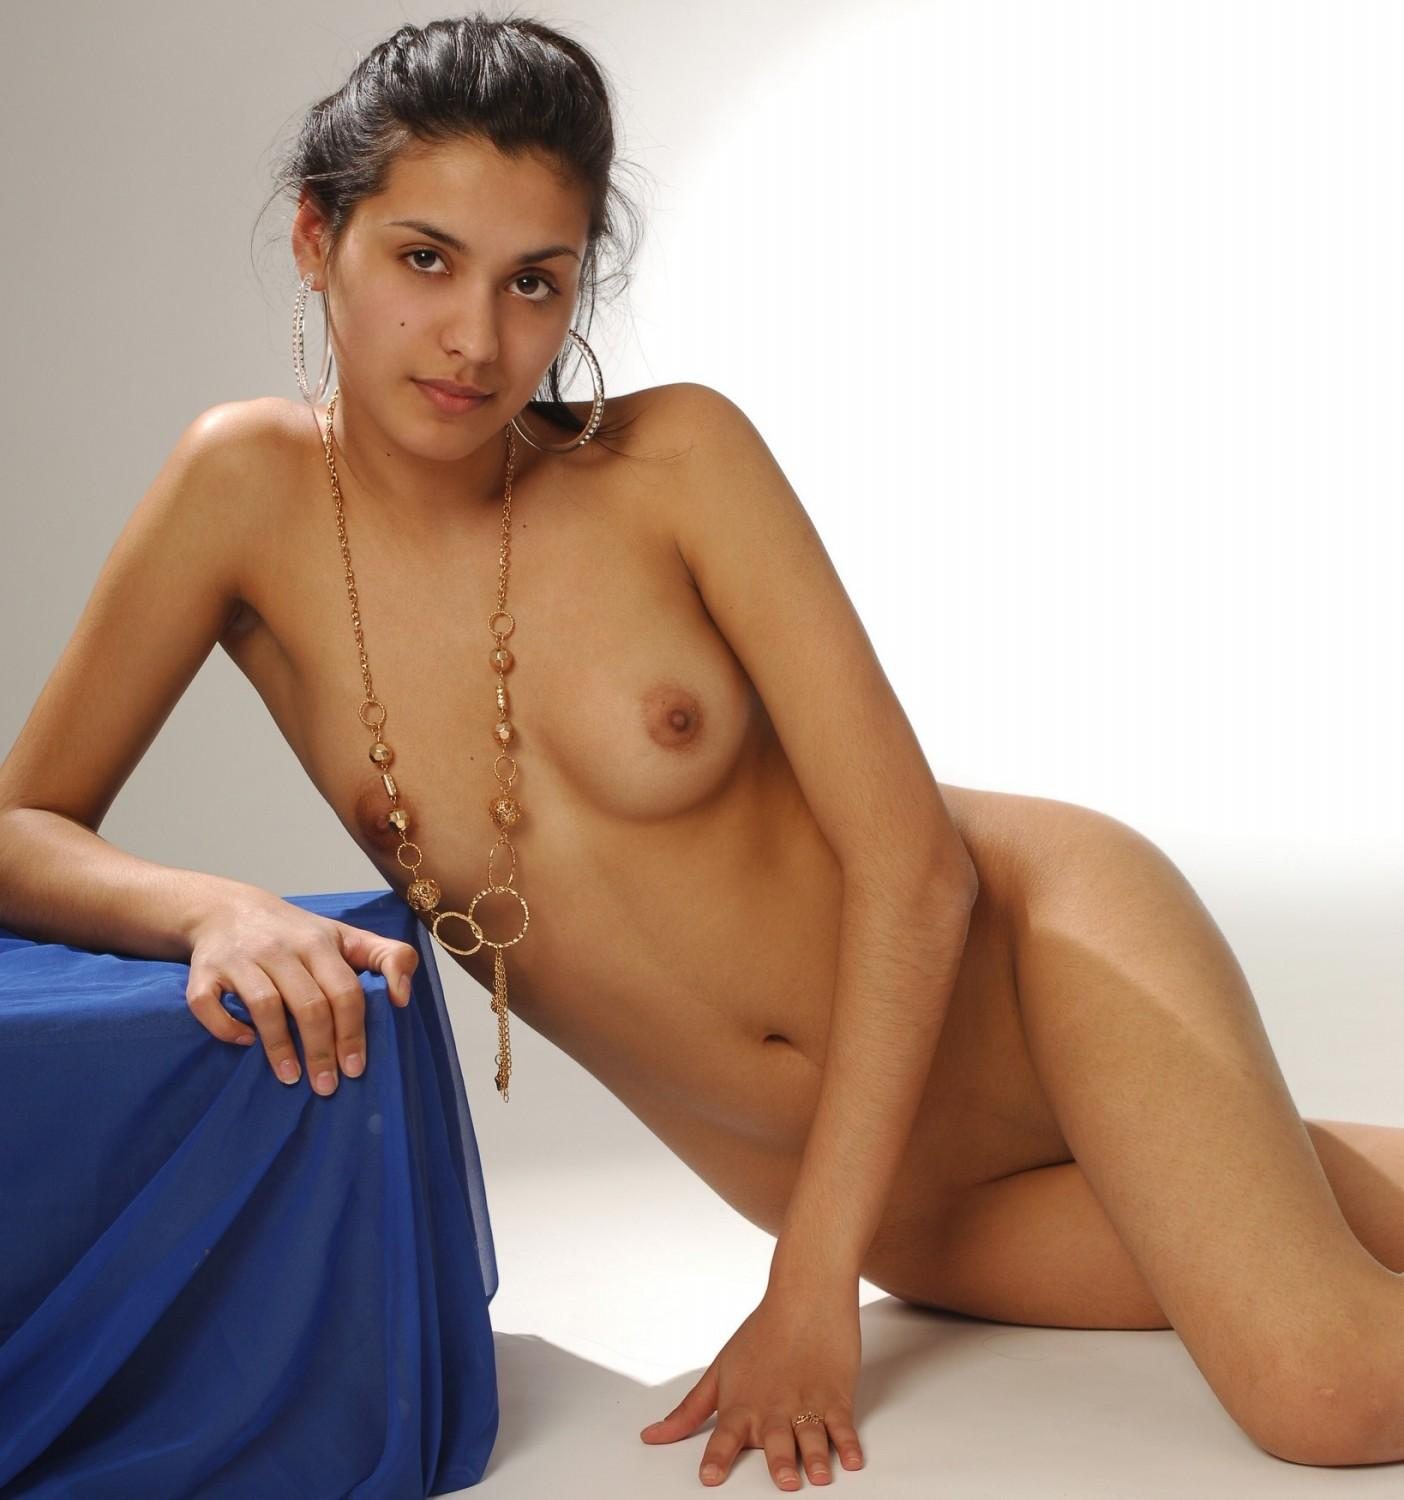 blowjob nude girls giving